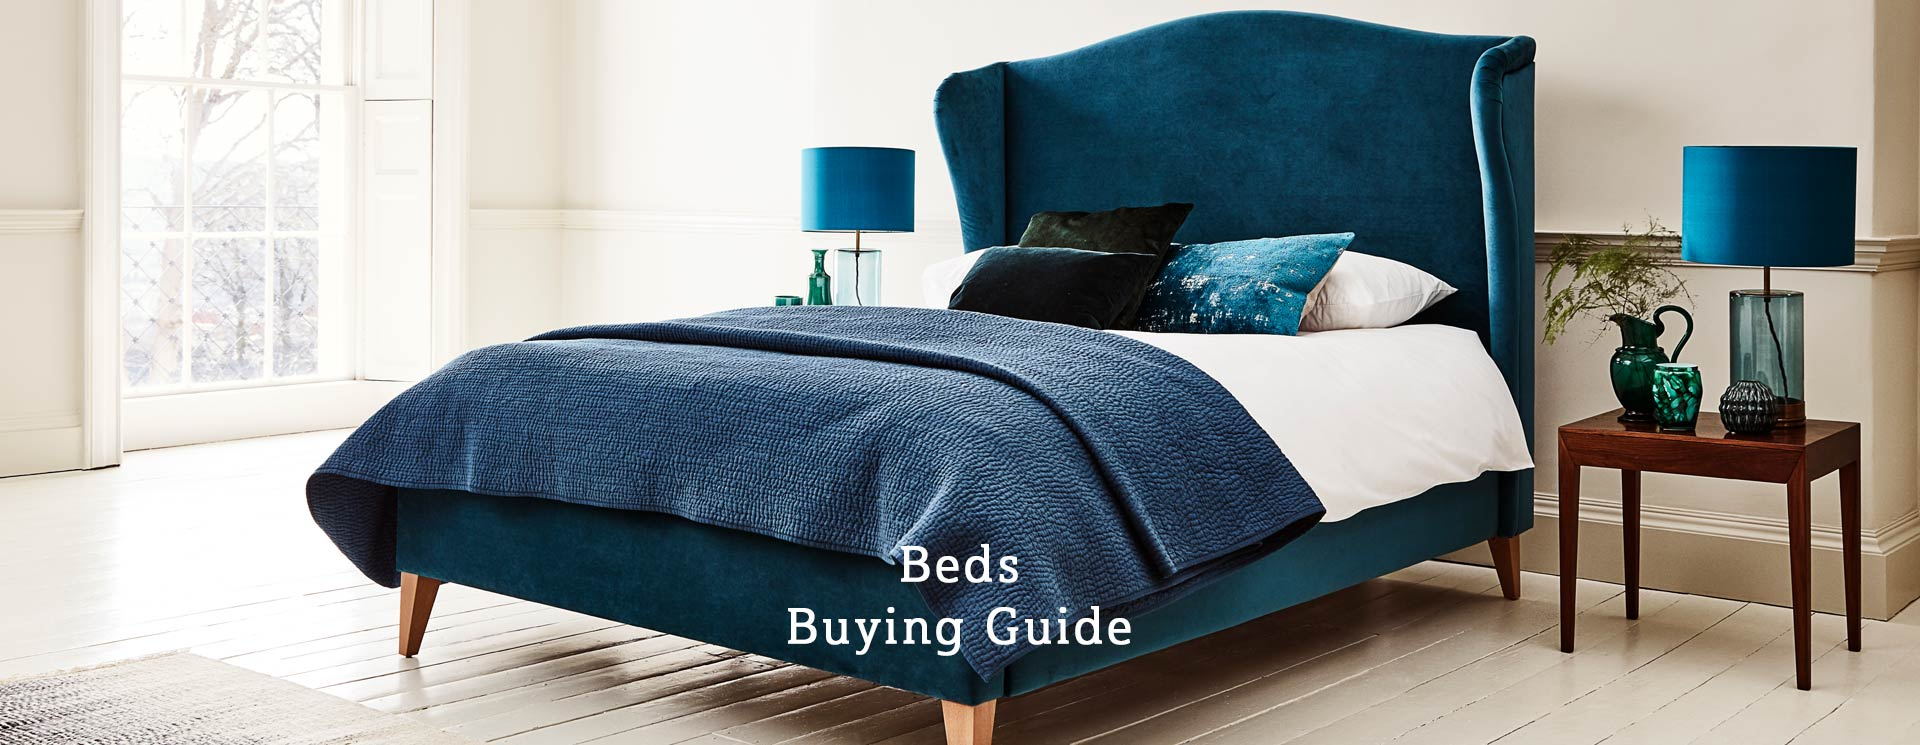 Buying Guide Beds